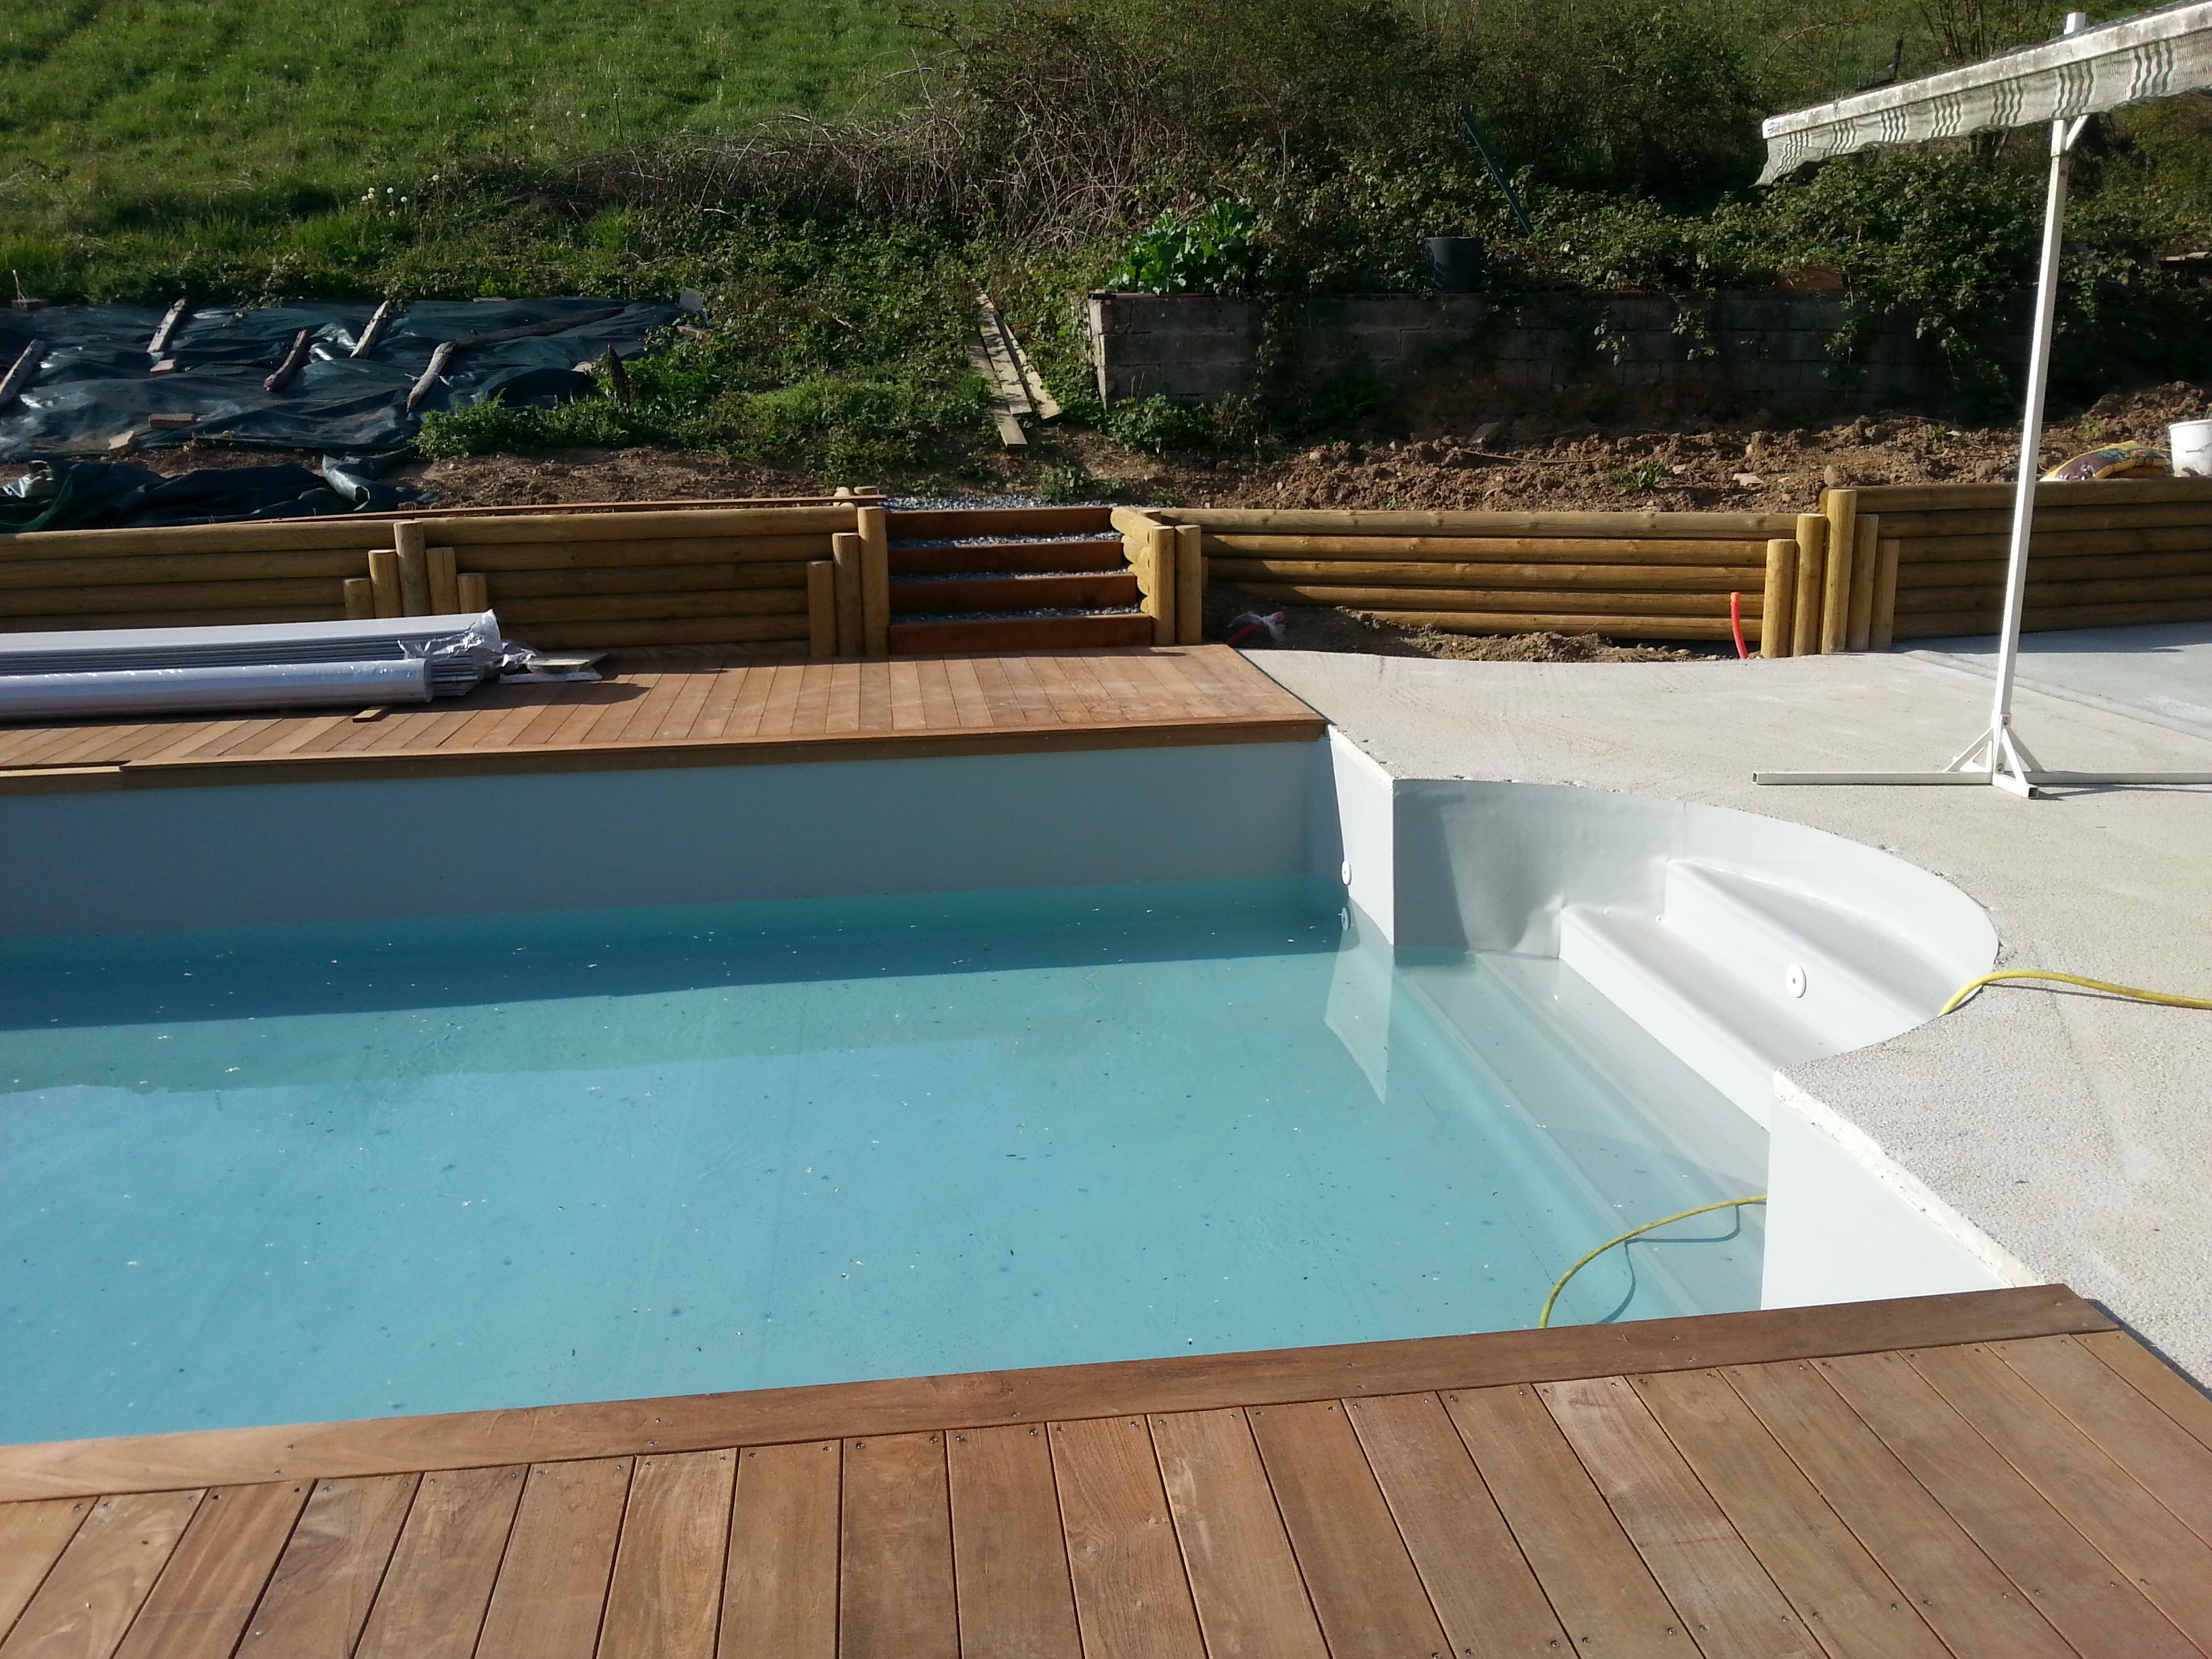 Renovation de piscine annecy r novation de piscine aix for Piscine spa annecy